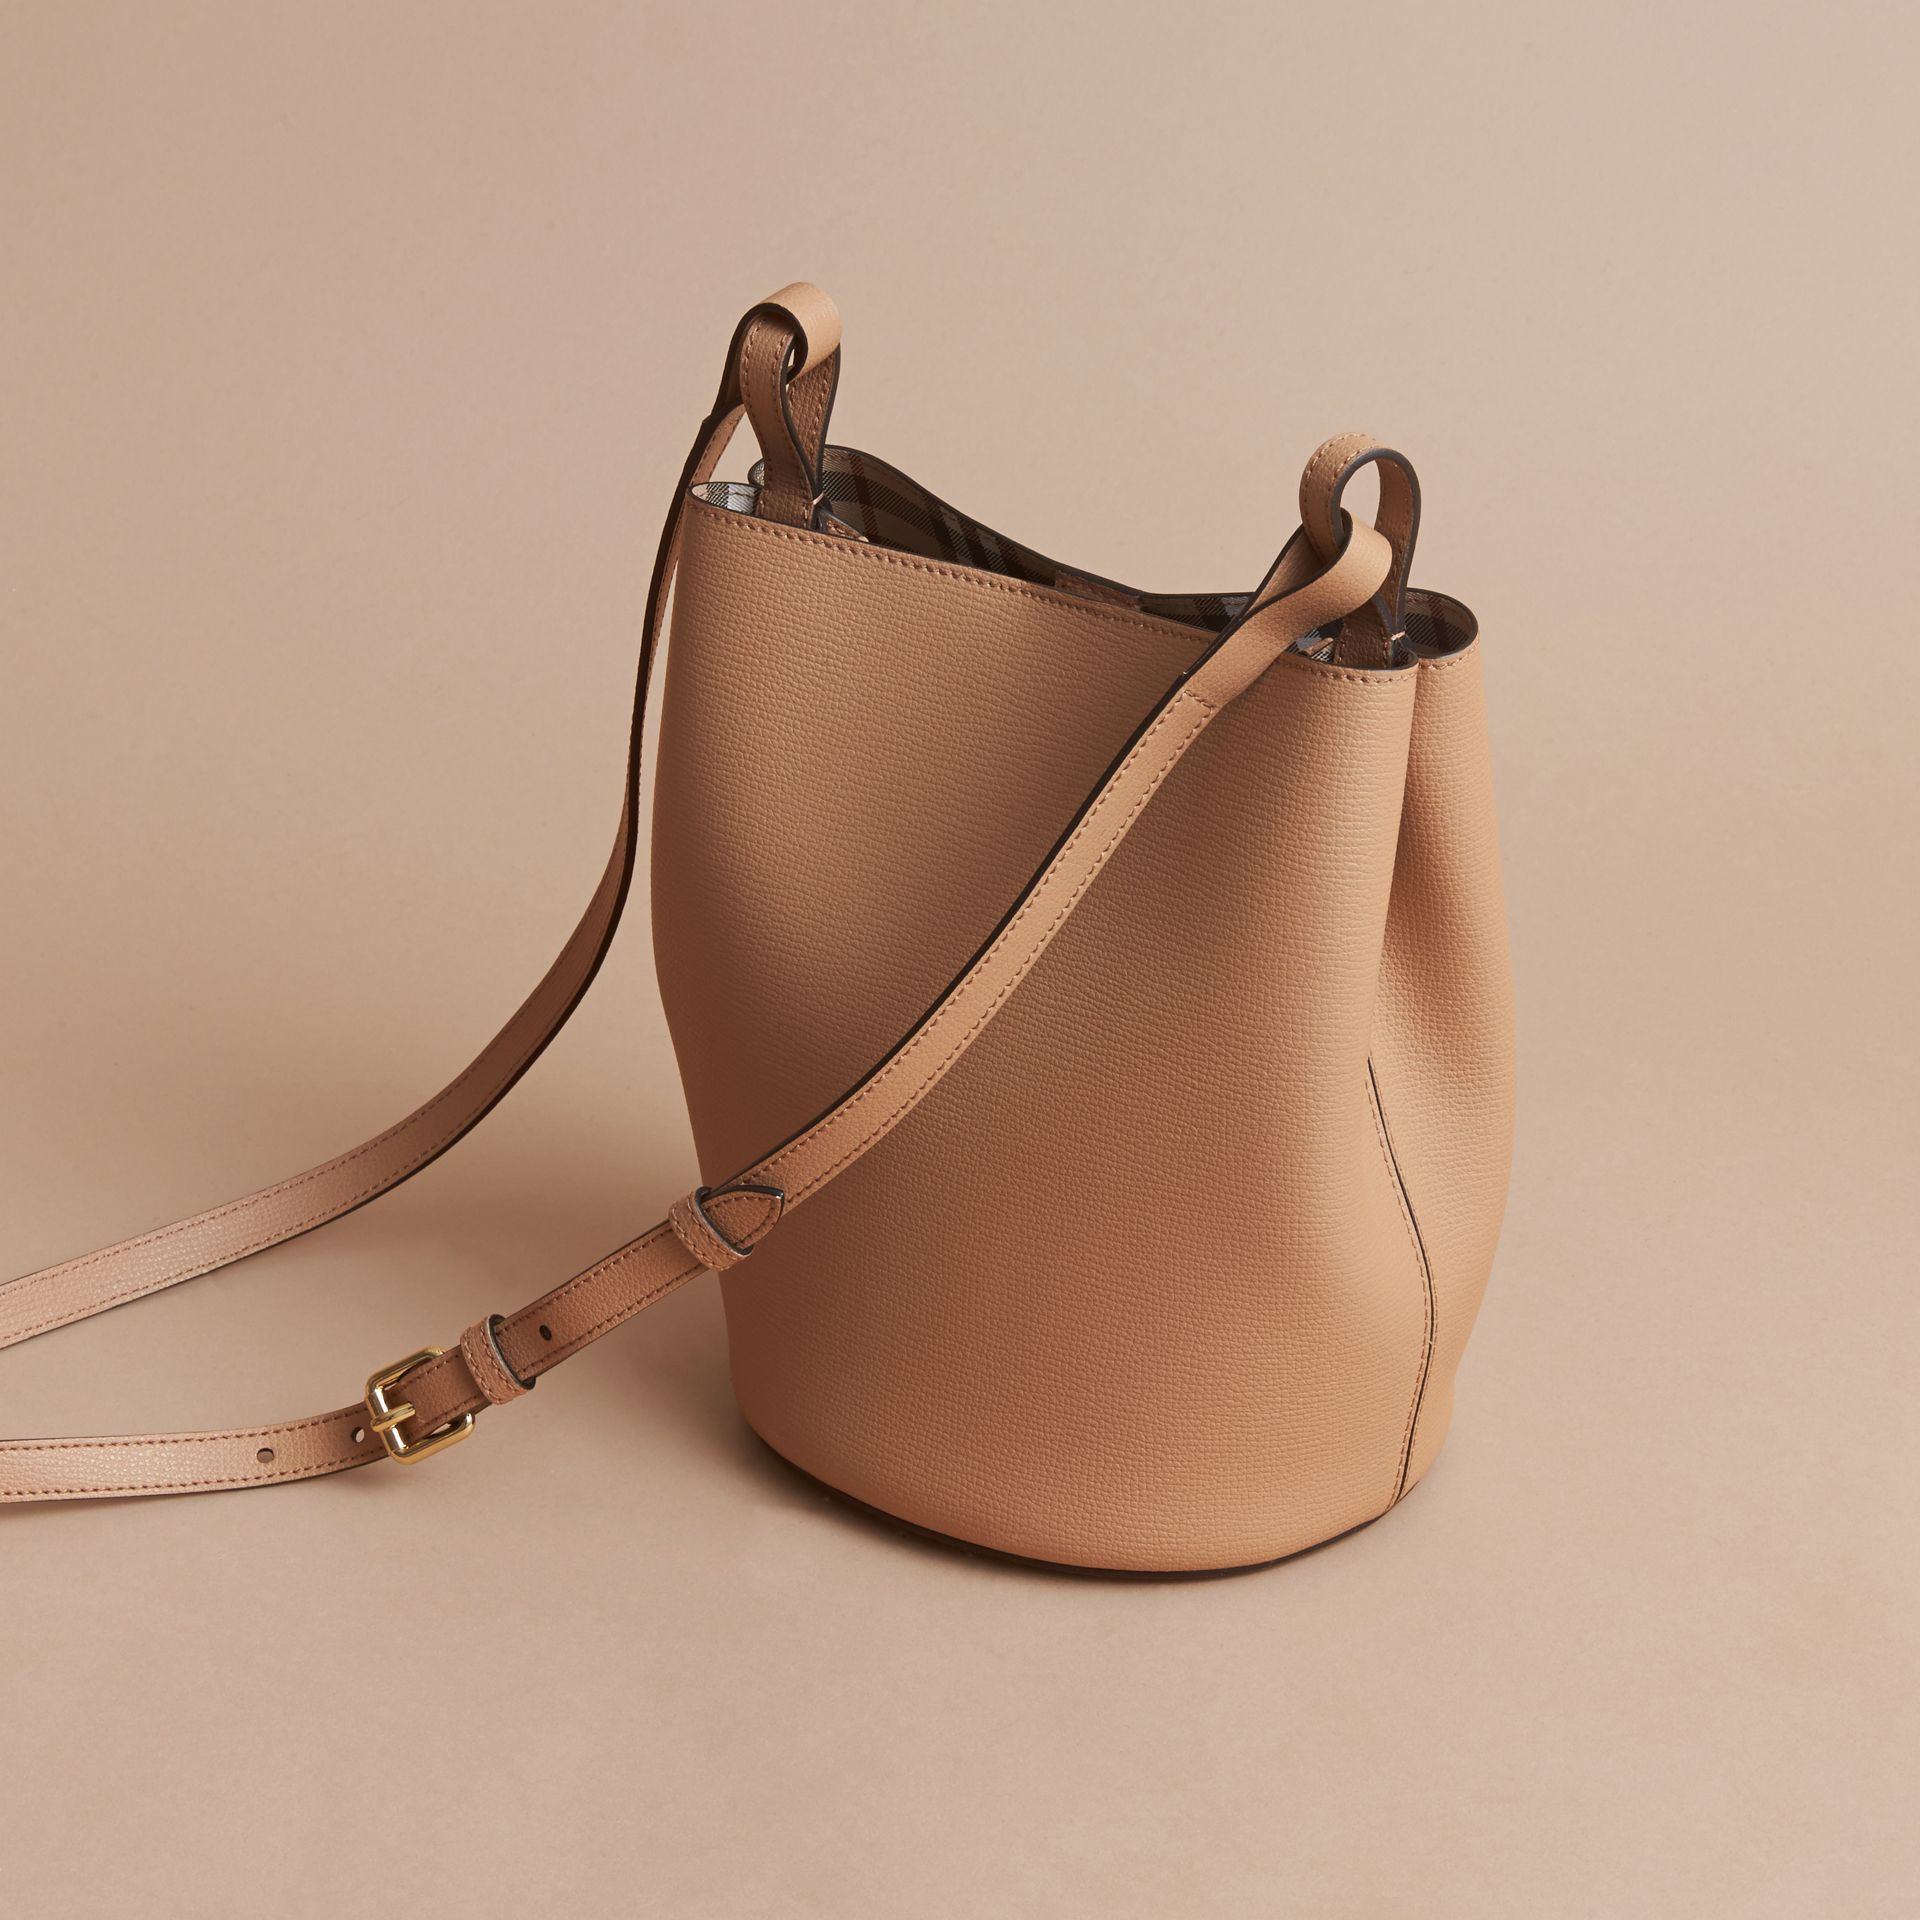 Leather and Haymarket Check Crossbody Bucket Bag in Mid Camel - Women | Burberry - gallery image 4